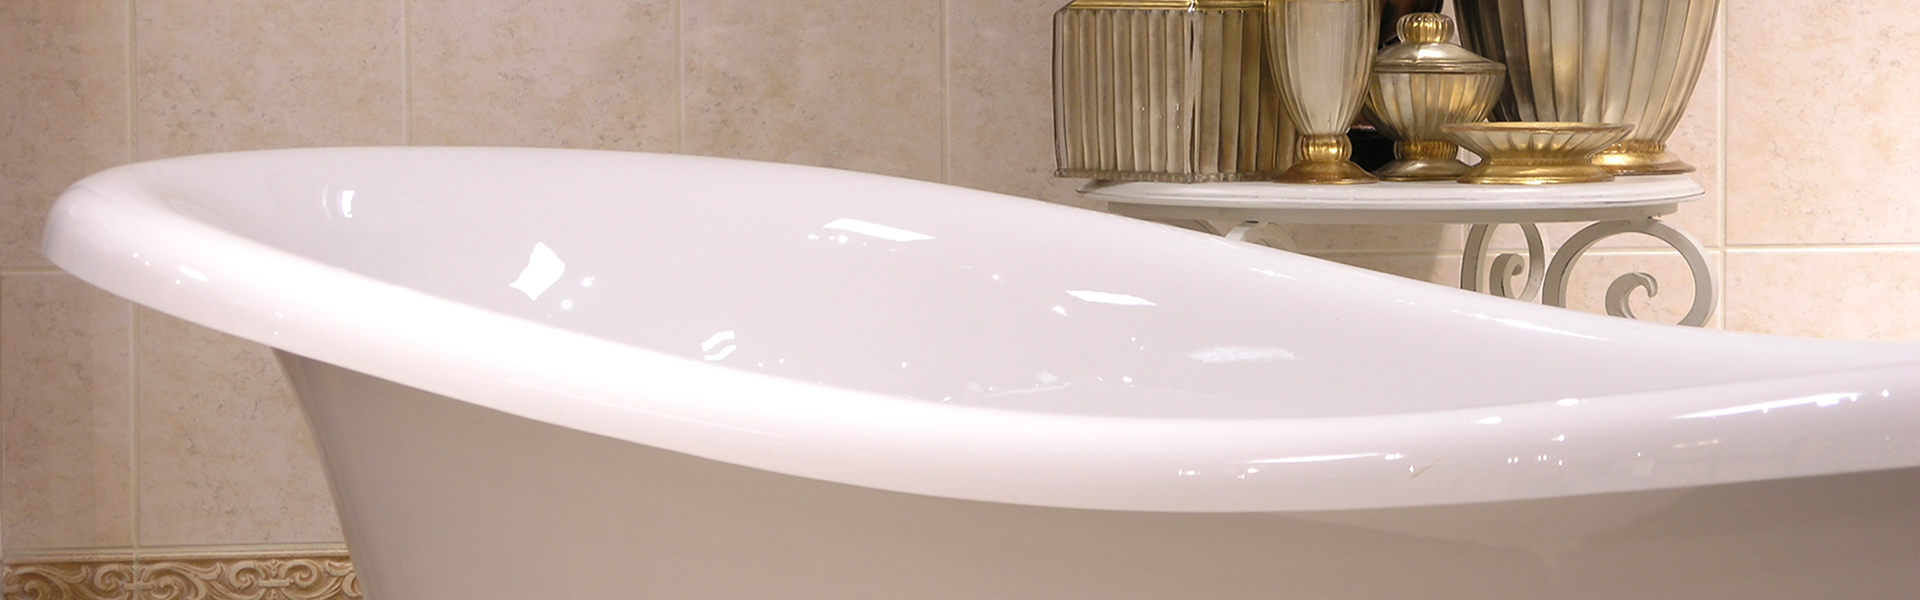 Genial BATHTUB REFINISHING SAN ANTONIO, Texas, CULTURED AND LAMINATE FORMICA,  AFFORDABLE CABINETS AND COUNTERTOPS RESURFACING, Cabinets Refacing, Tile,  ...